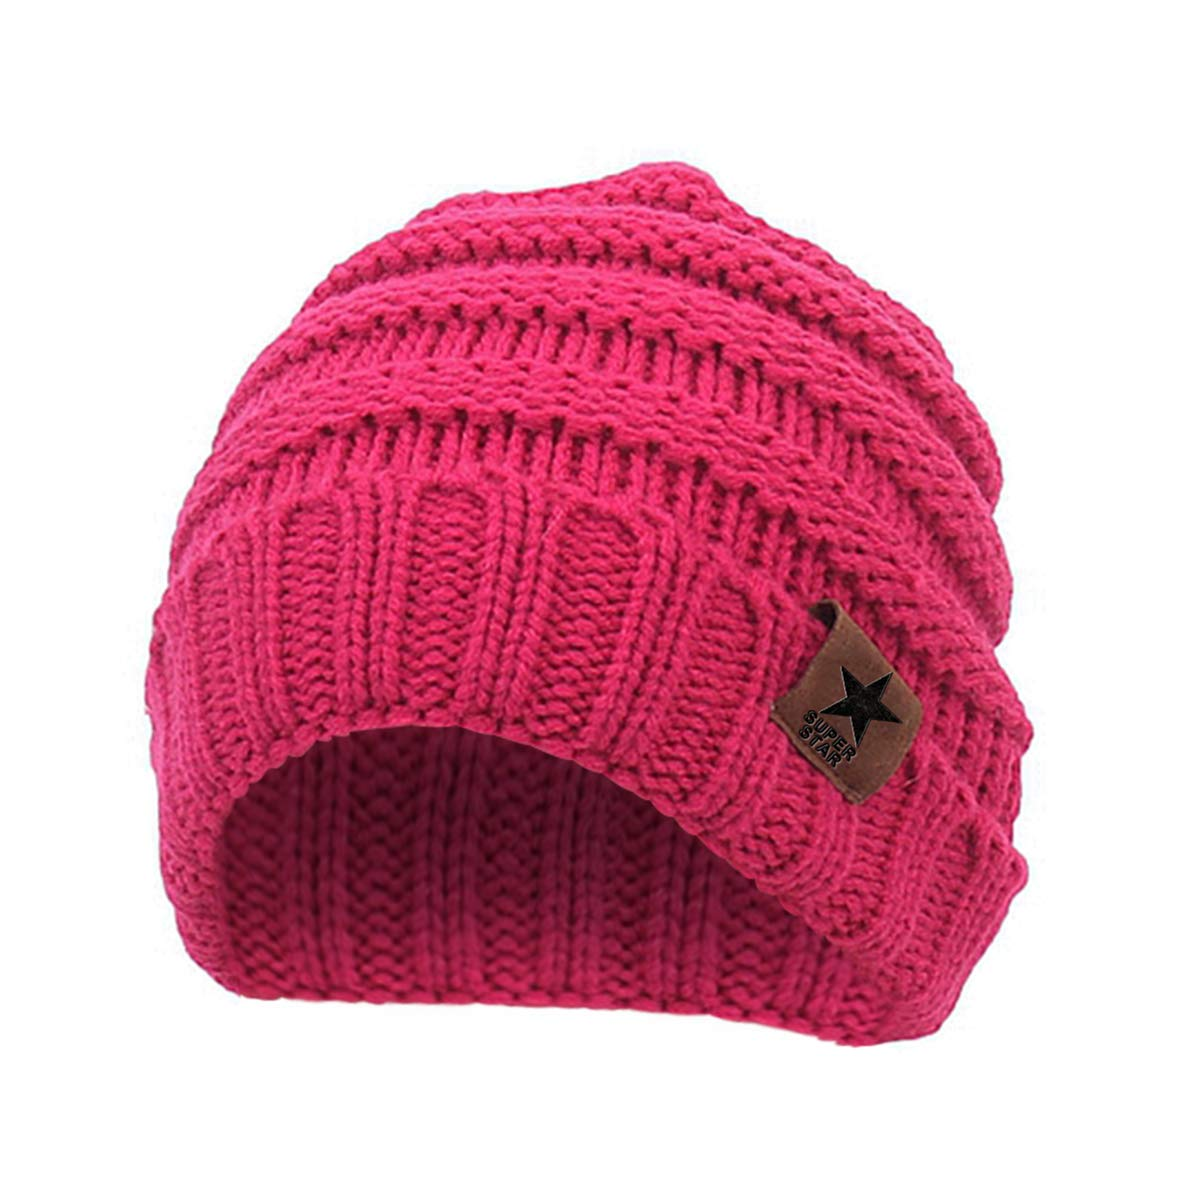 Durio Soft Lovely Knited Warm Infant Toddler Kid Baby Winter Hats Caps Cute Baby Beanies for Boys Girls 0-2 Years